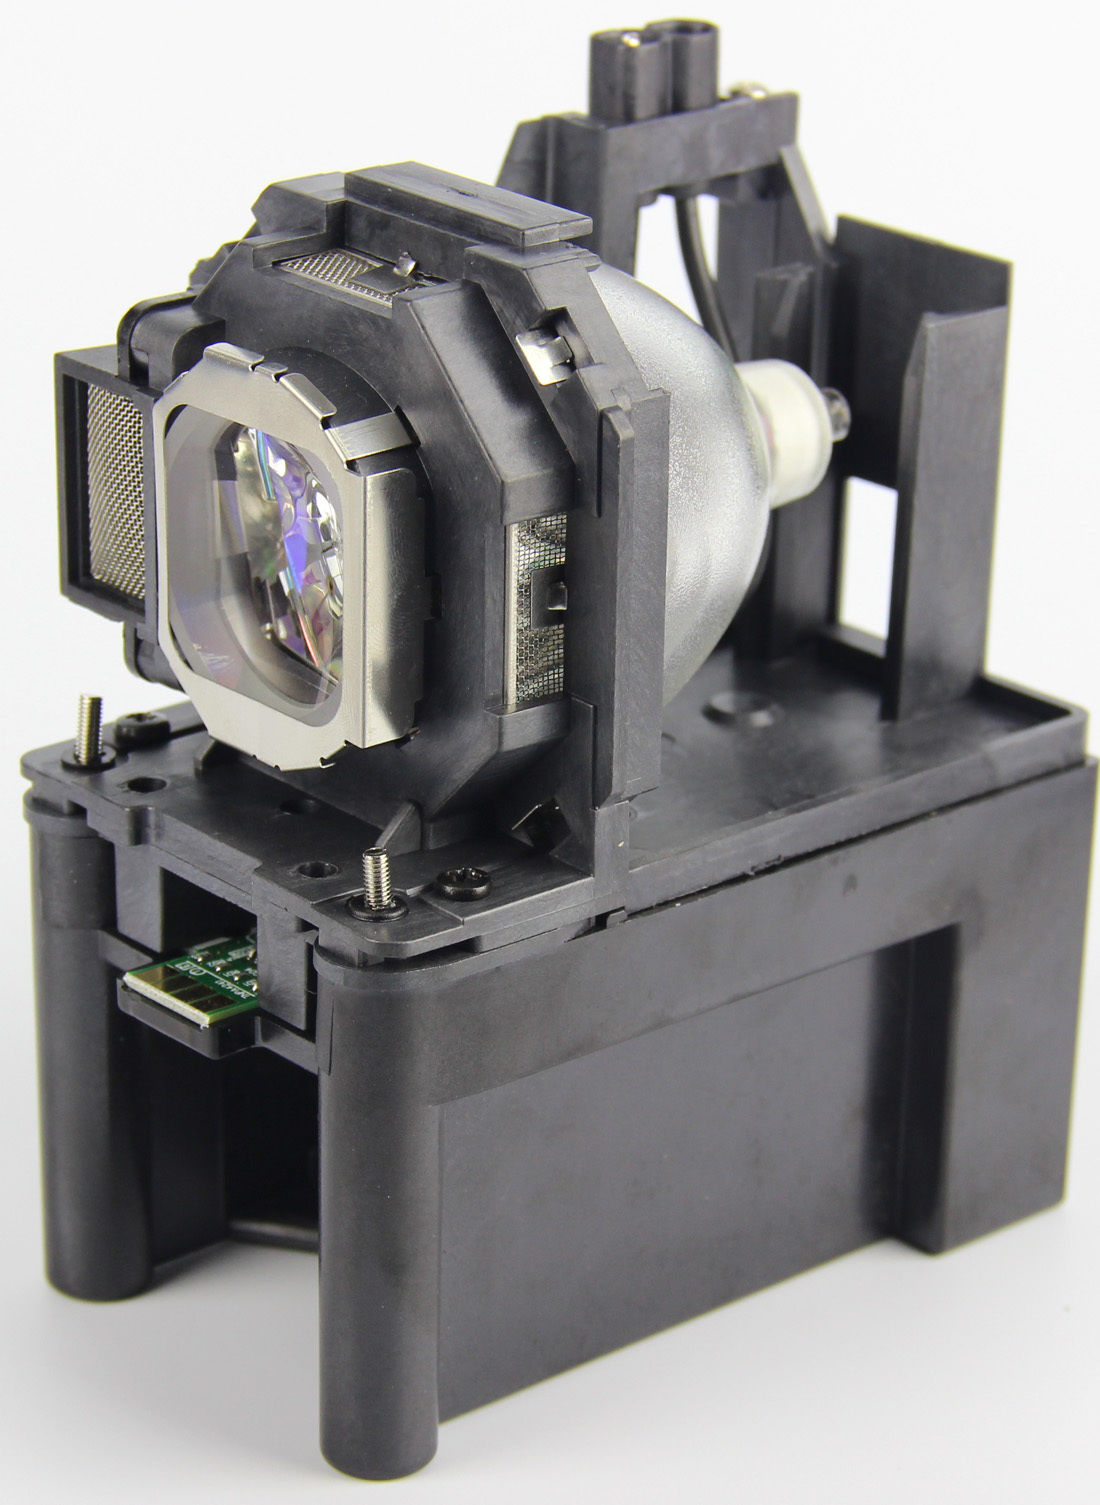 Projector Lamp Bulb ET-LAP770 ETLAP770 LAP770 for Panasonic PT-PX770 PT-PX770NT PT-PX760 PT-PX860 PT-870NE with housing high quality et lal320 projector bulb with original lamp for panasonic pt lx270u pt lx300 pt lx300u projector